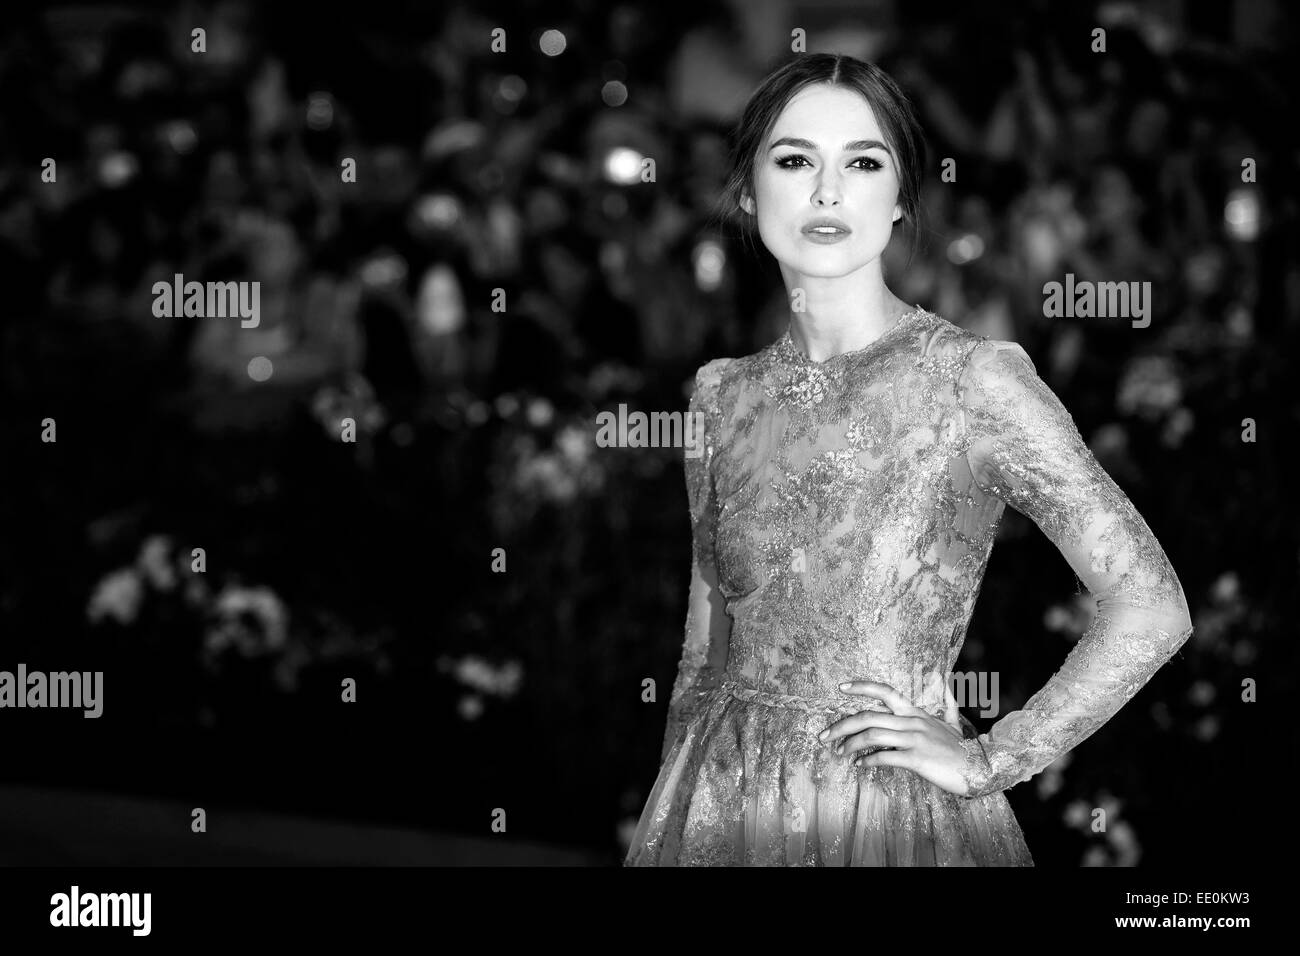 VENICE, ITALY - SEPTEMBER 02: Actress Keira Knightley attends the 'A Dangerous Method' premiere during the - Stock Image